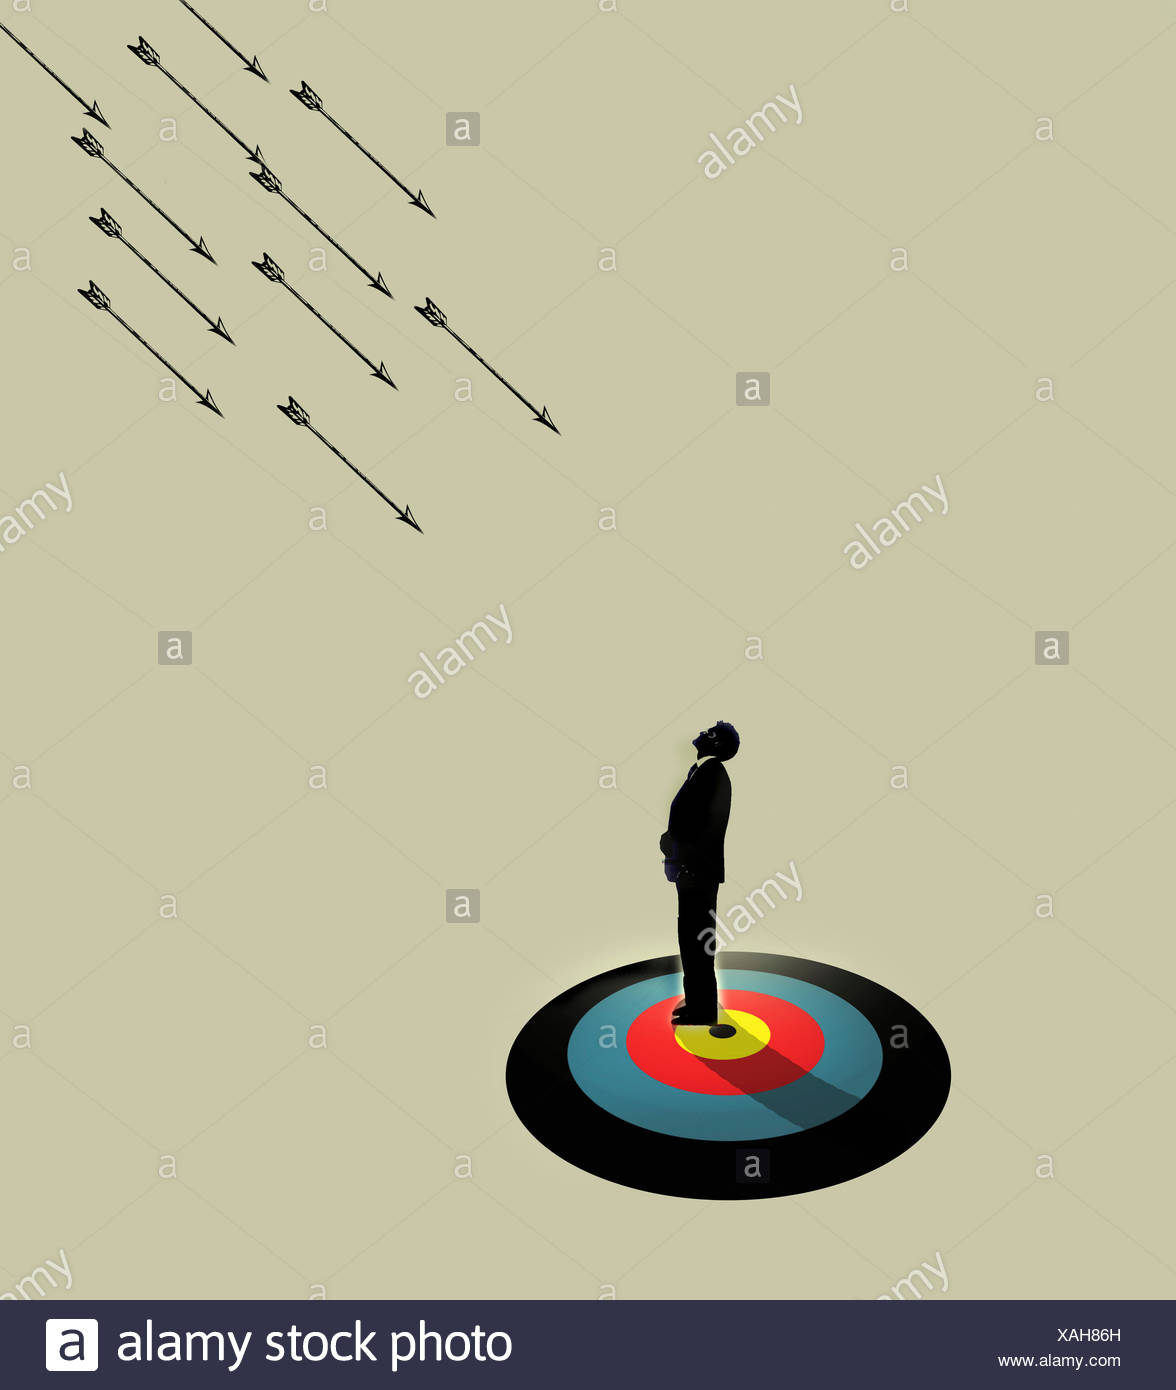 Businessman standing on target waiting for arrows to hit - Stock Image